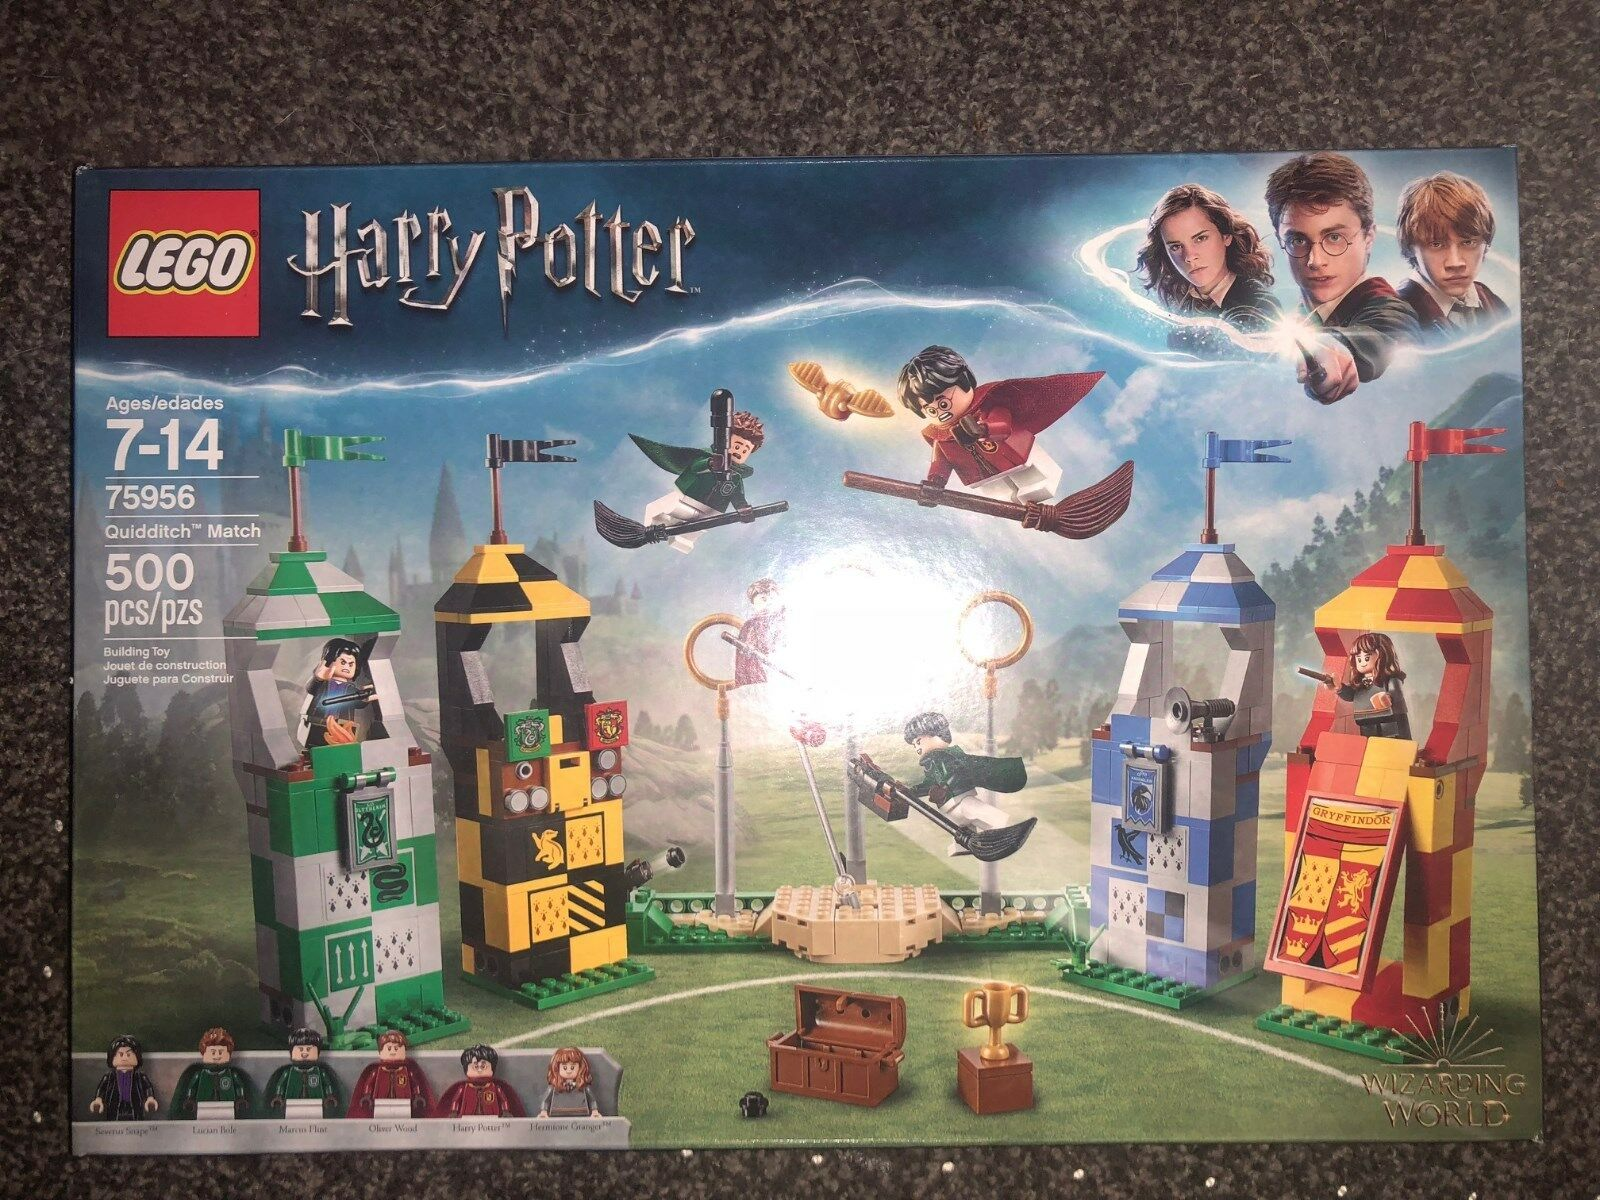 LEGO 75956 Harry Potter Quidditch Match (with 6 minifigs) minifigs) minifigs) 2018 NEW SEALED  d66cc5